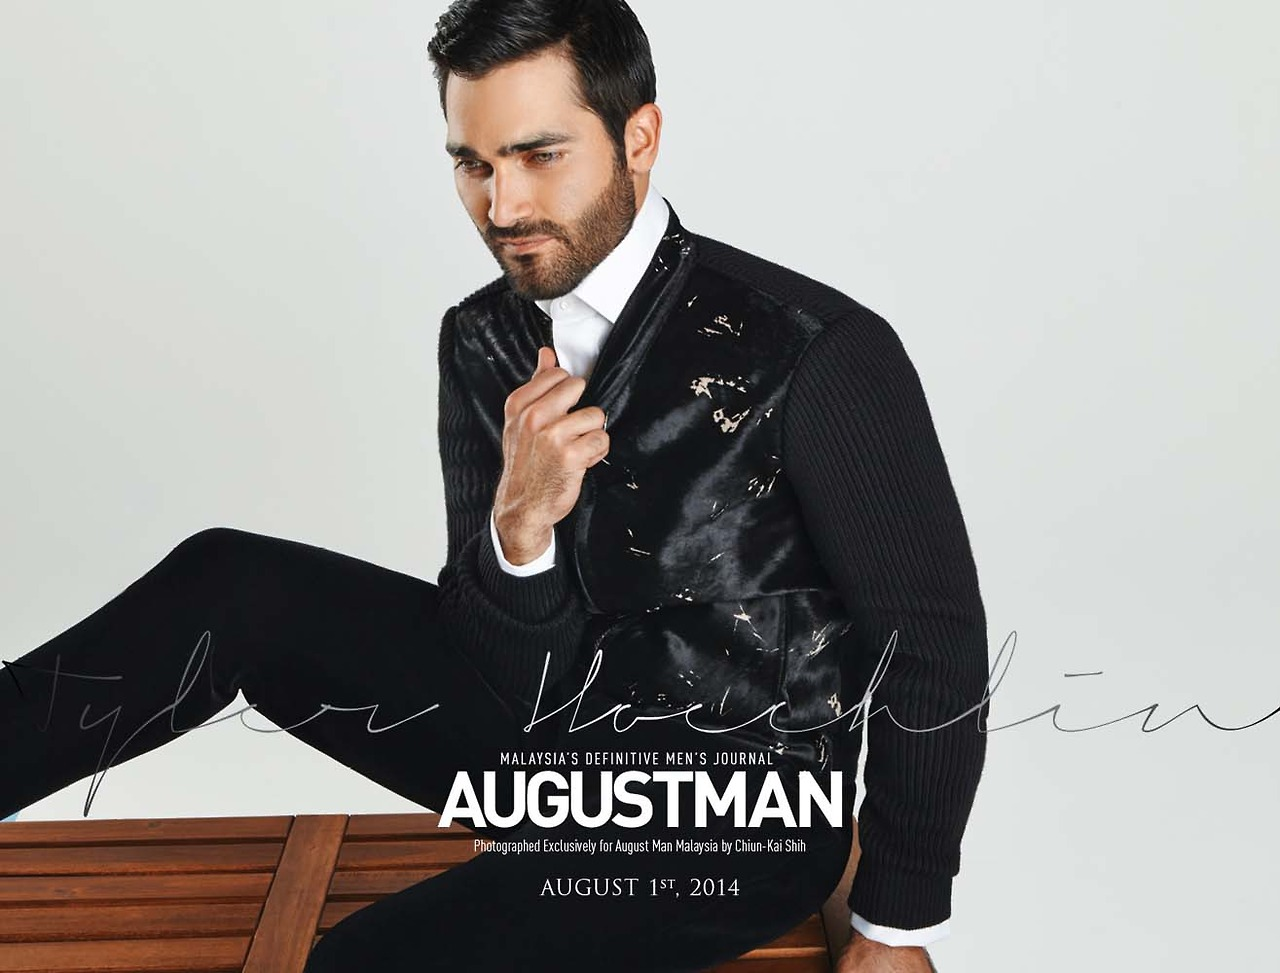 August Man Malaysia August 2014